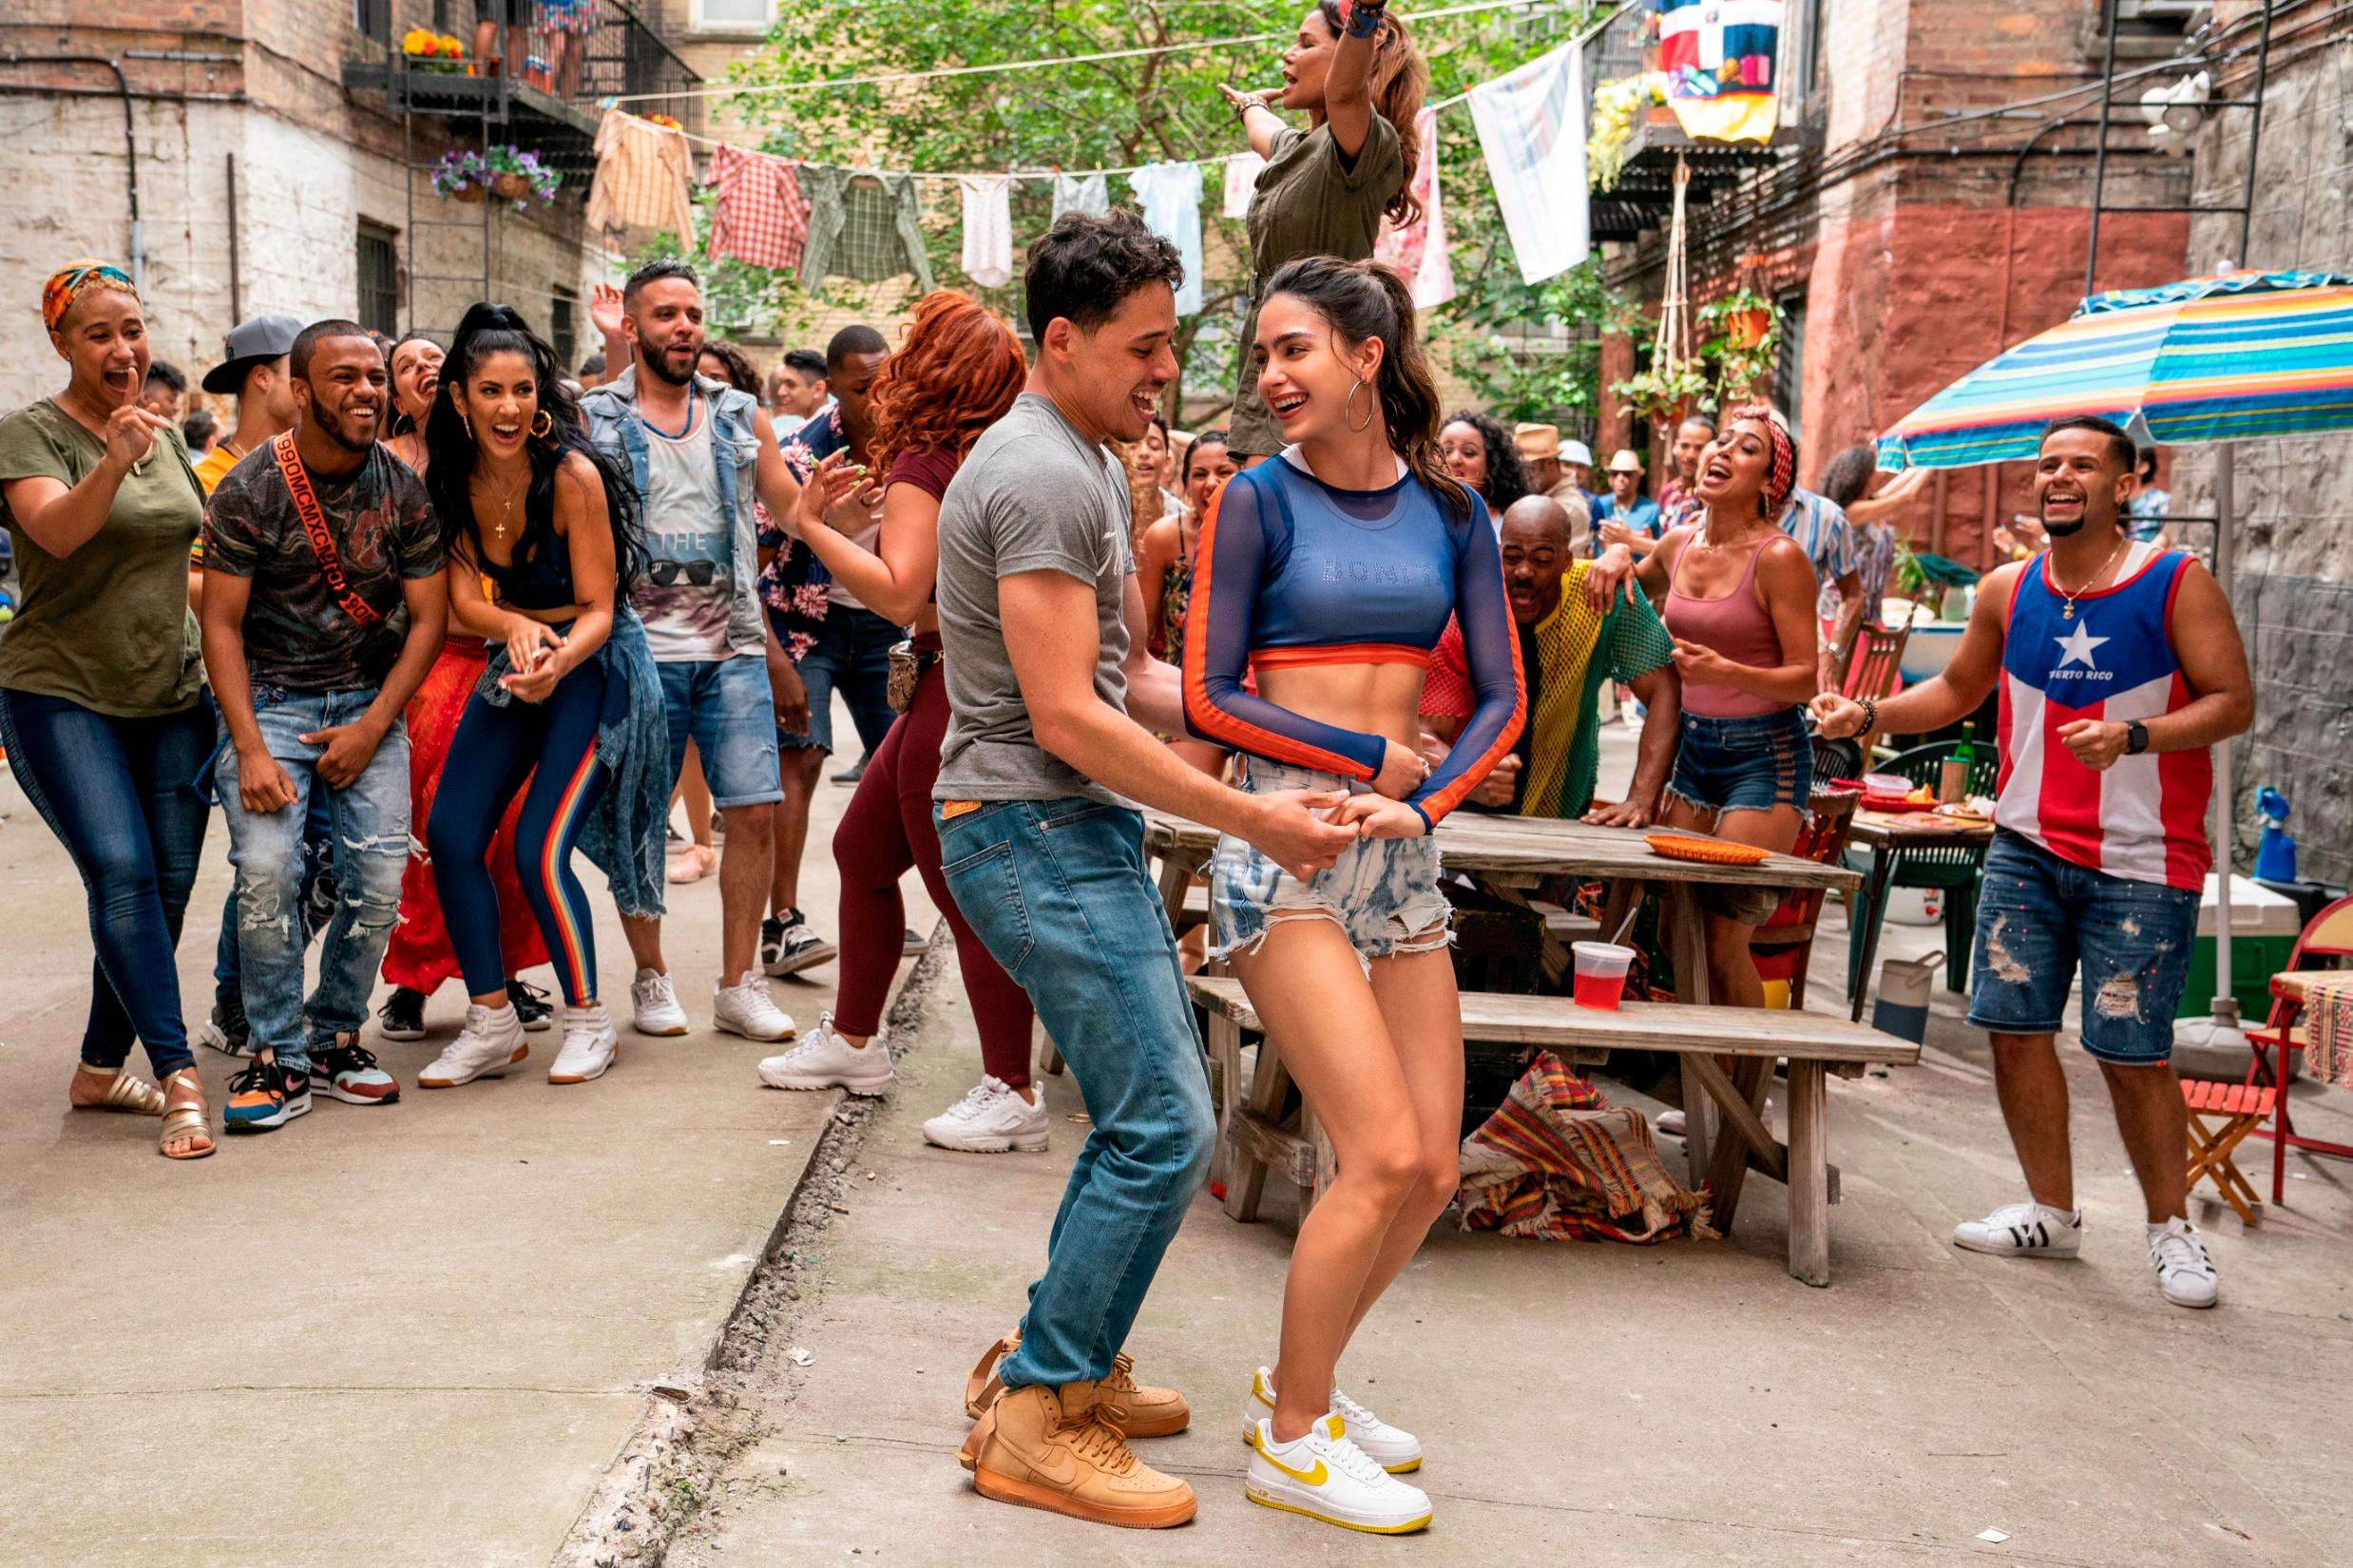 'In the Heights' notches a lackluster box office opening